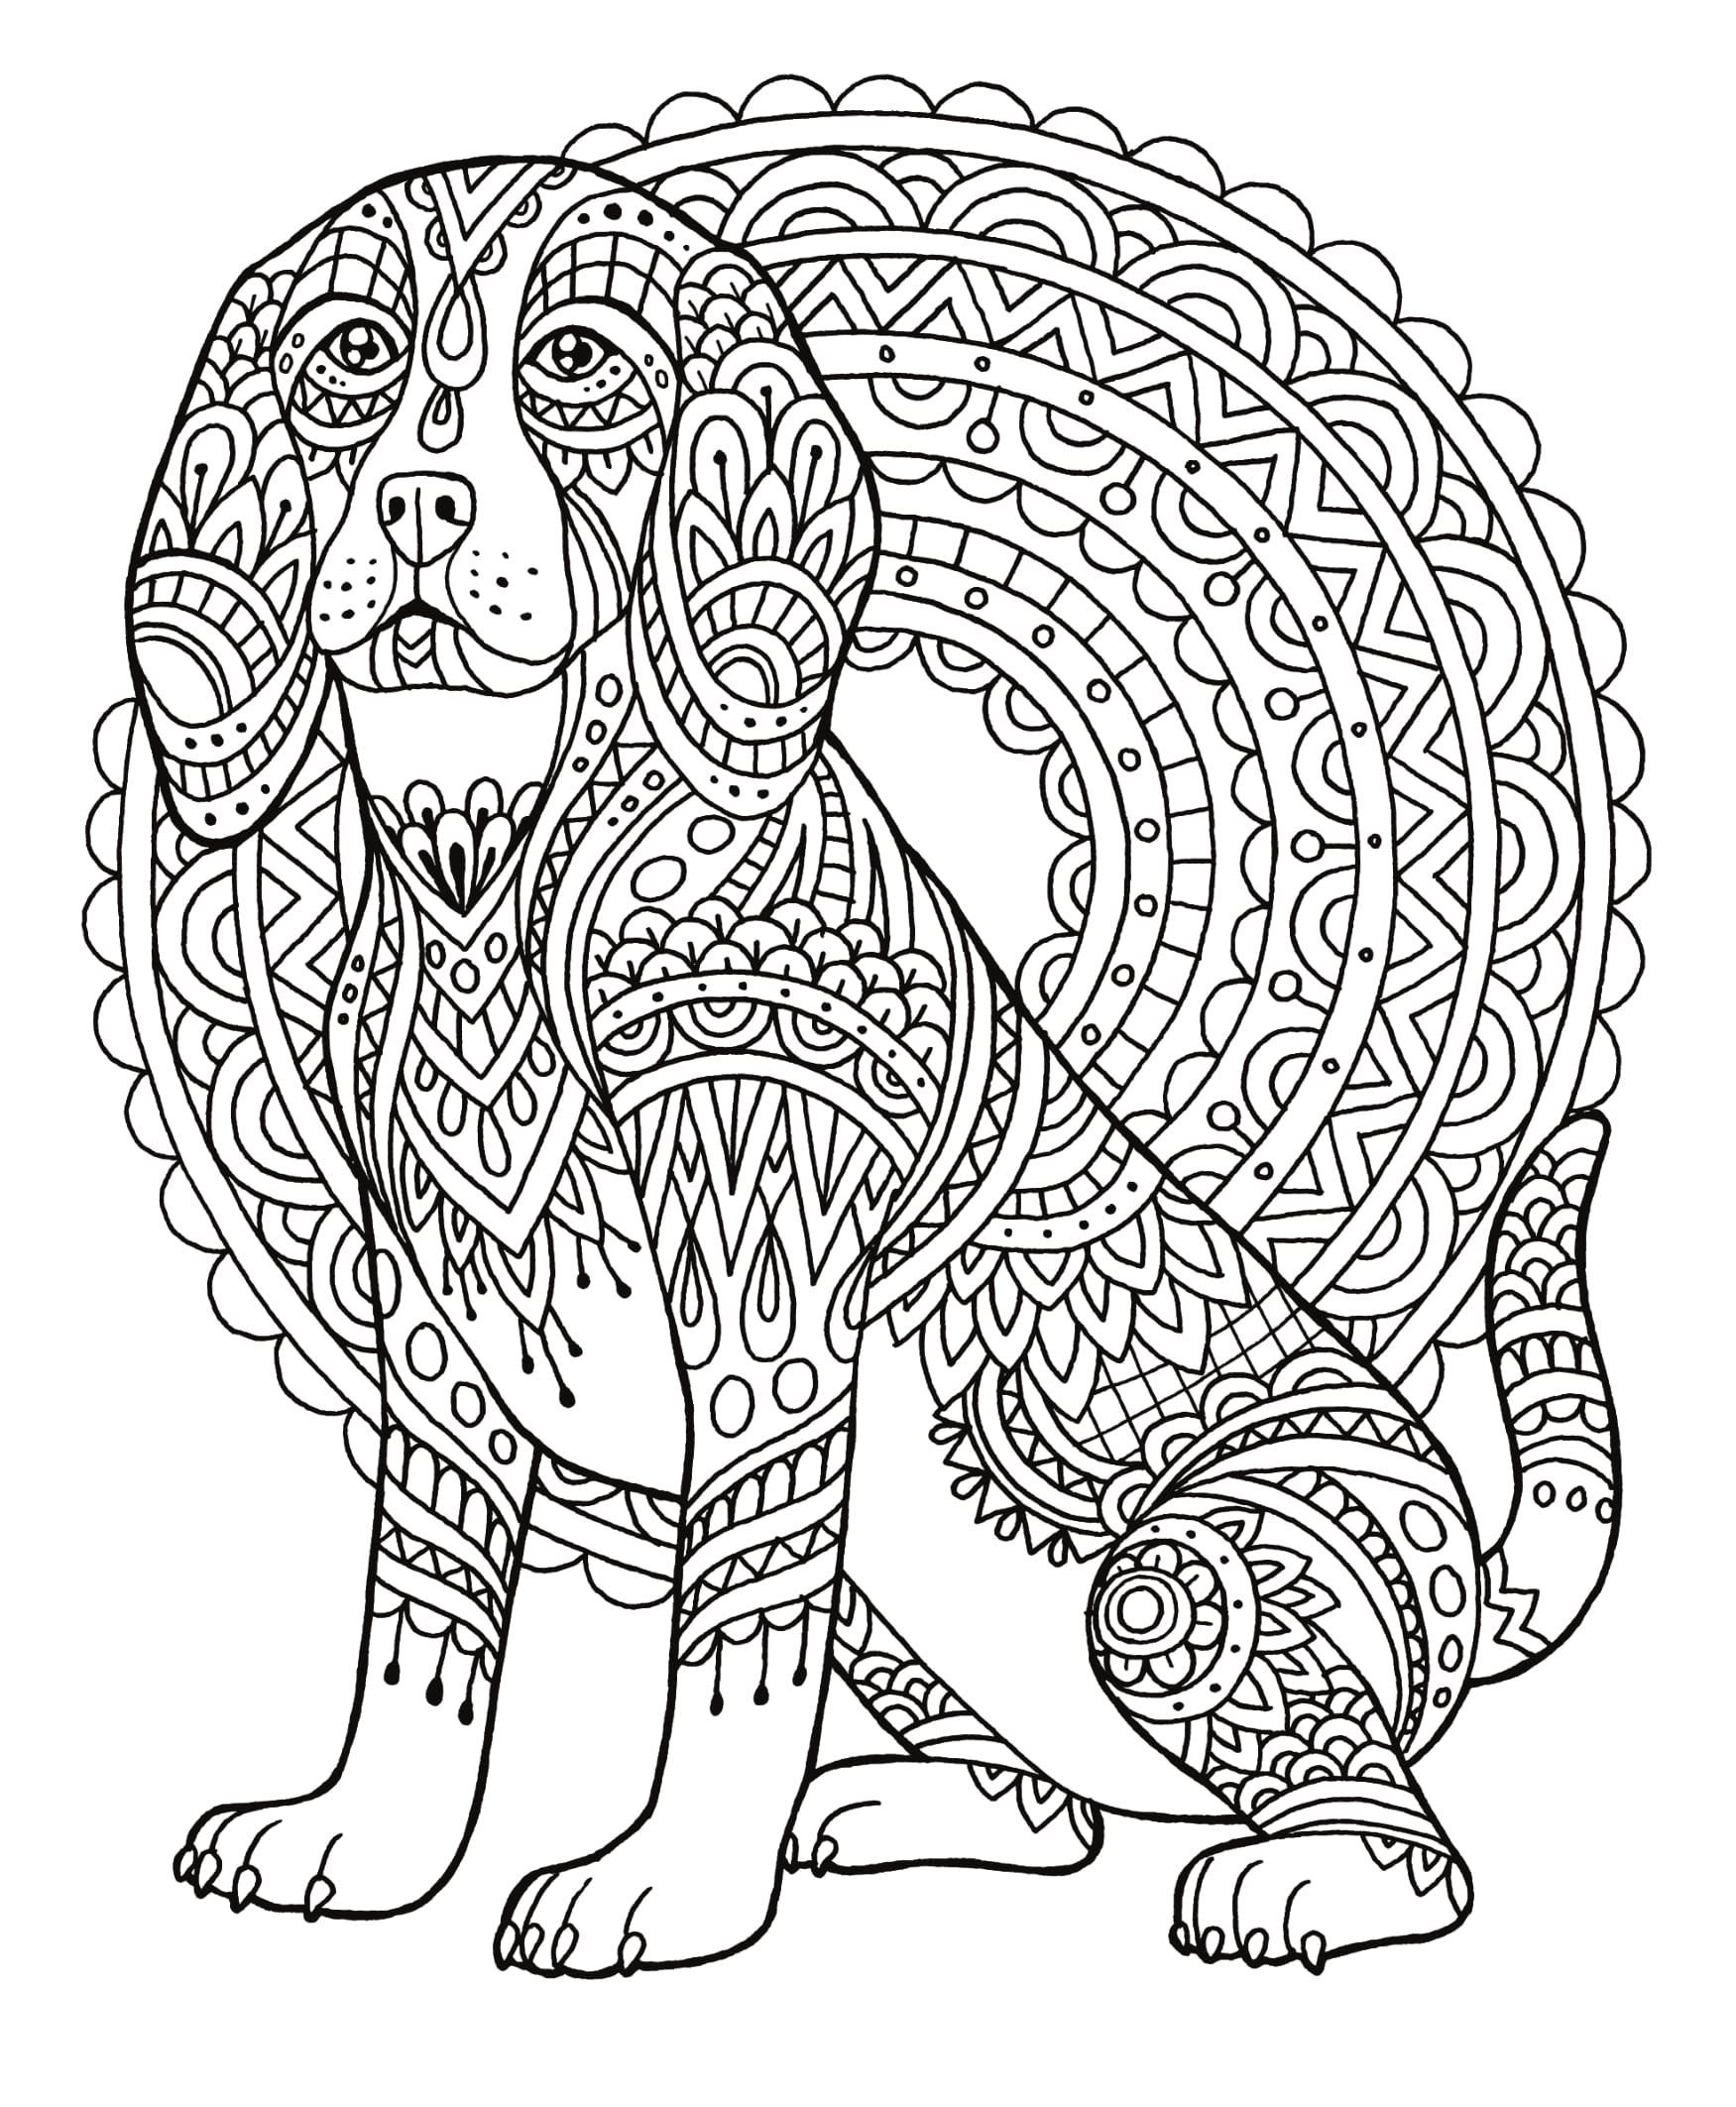 Dog Coloring Book For Adults By Colorit Colorit Hasby Mubarok 9780998225944 Amazon Com Books Dog Coloring Book Dog Coloring Page Pattern Coloring Pages